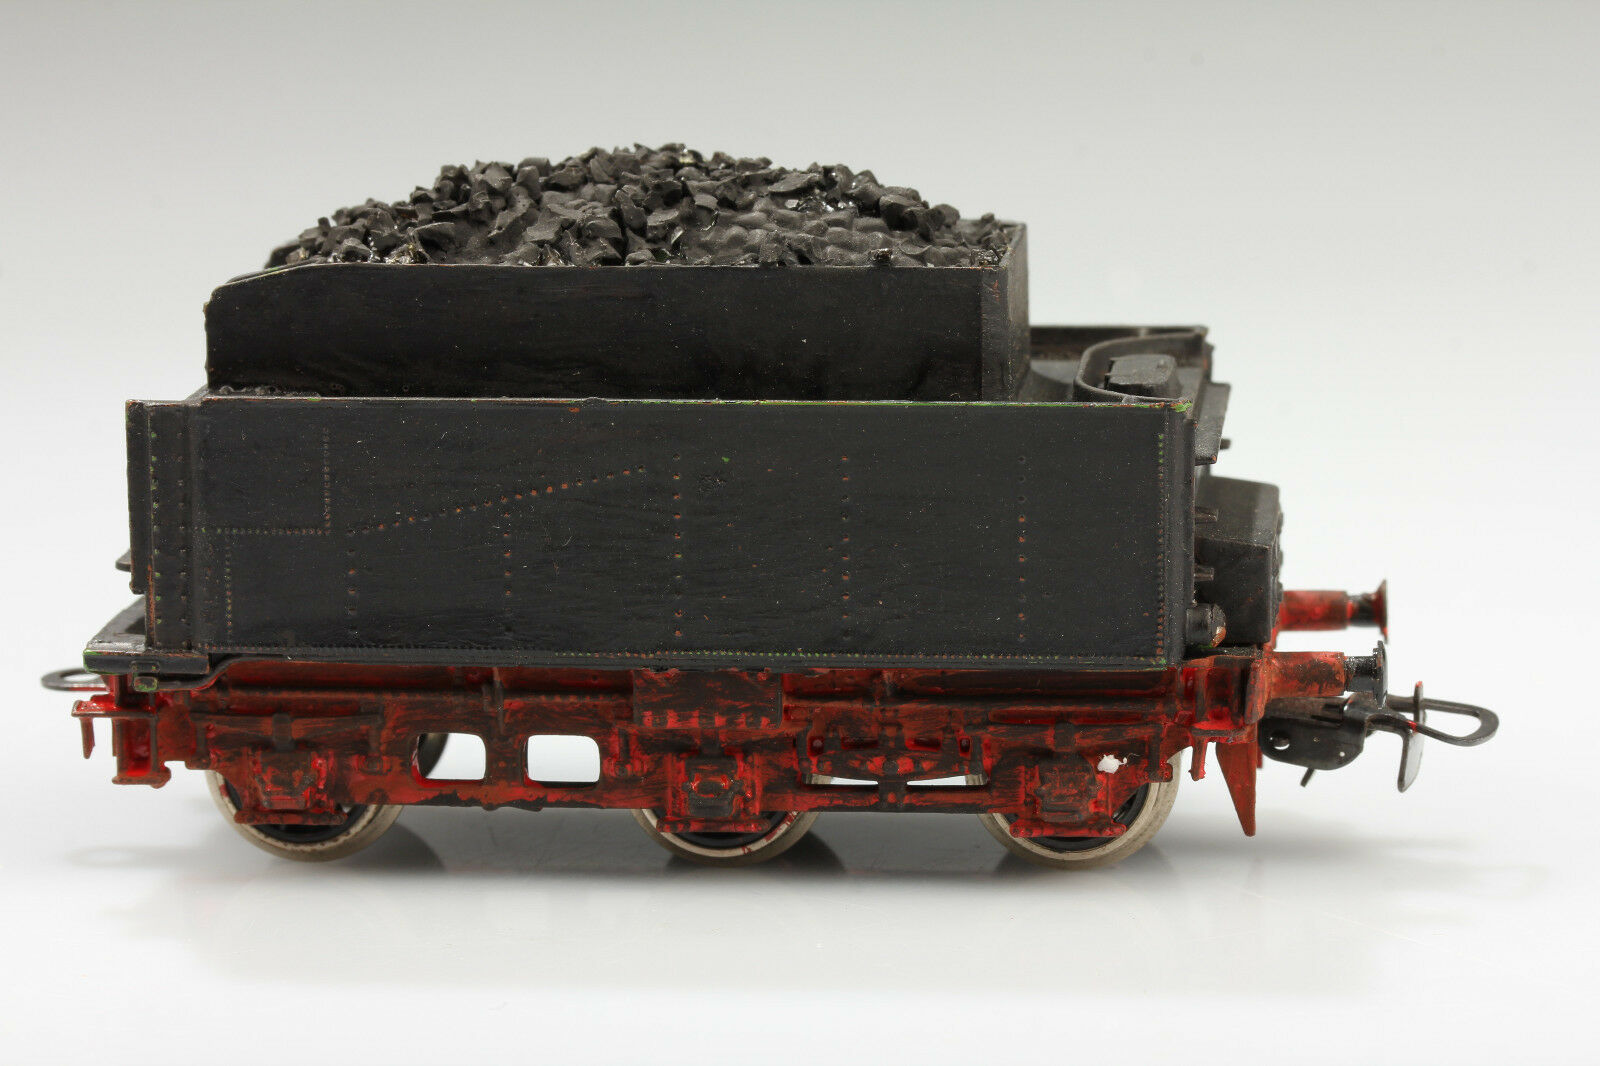 Piko H0 Tender for 55 Coupling Note  Dirt Defects but Rolls